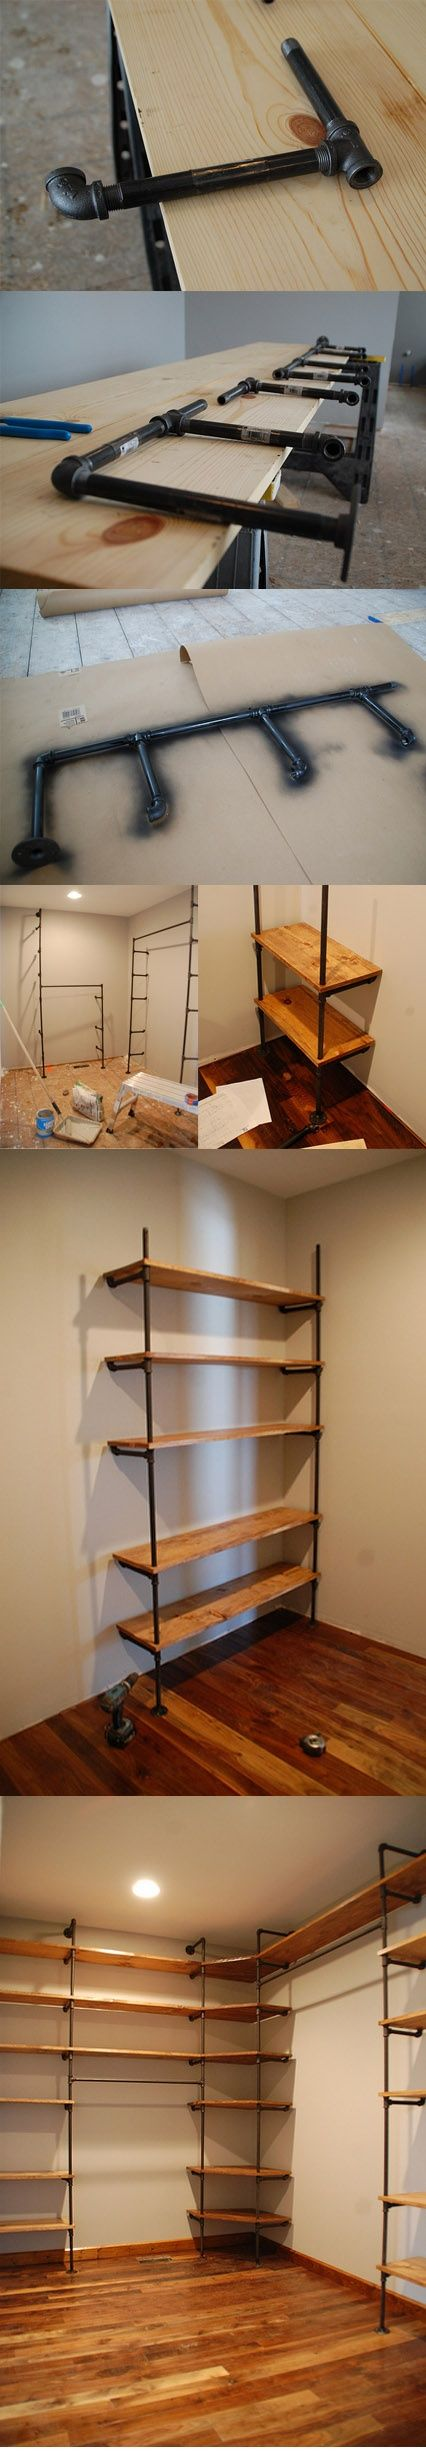 DIY: Piping and wood shelving for closets